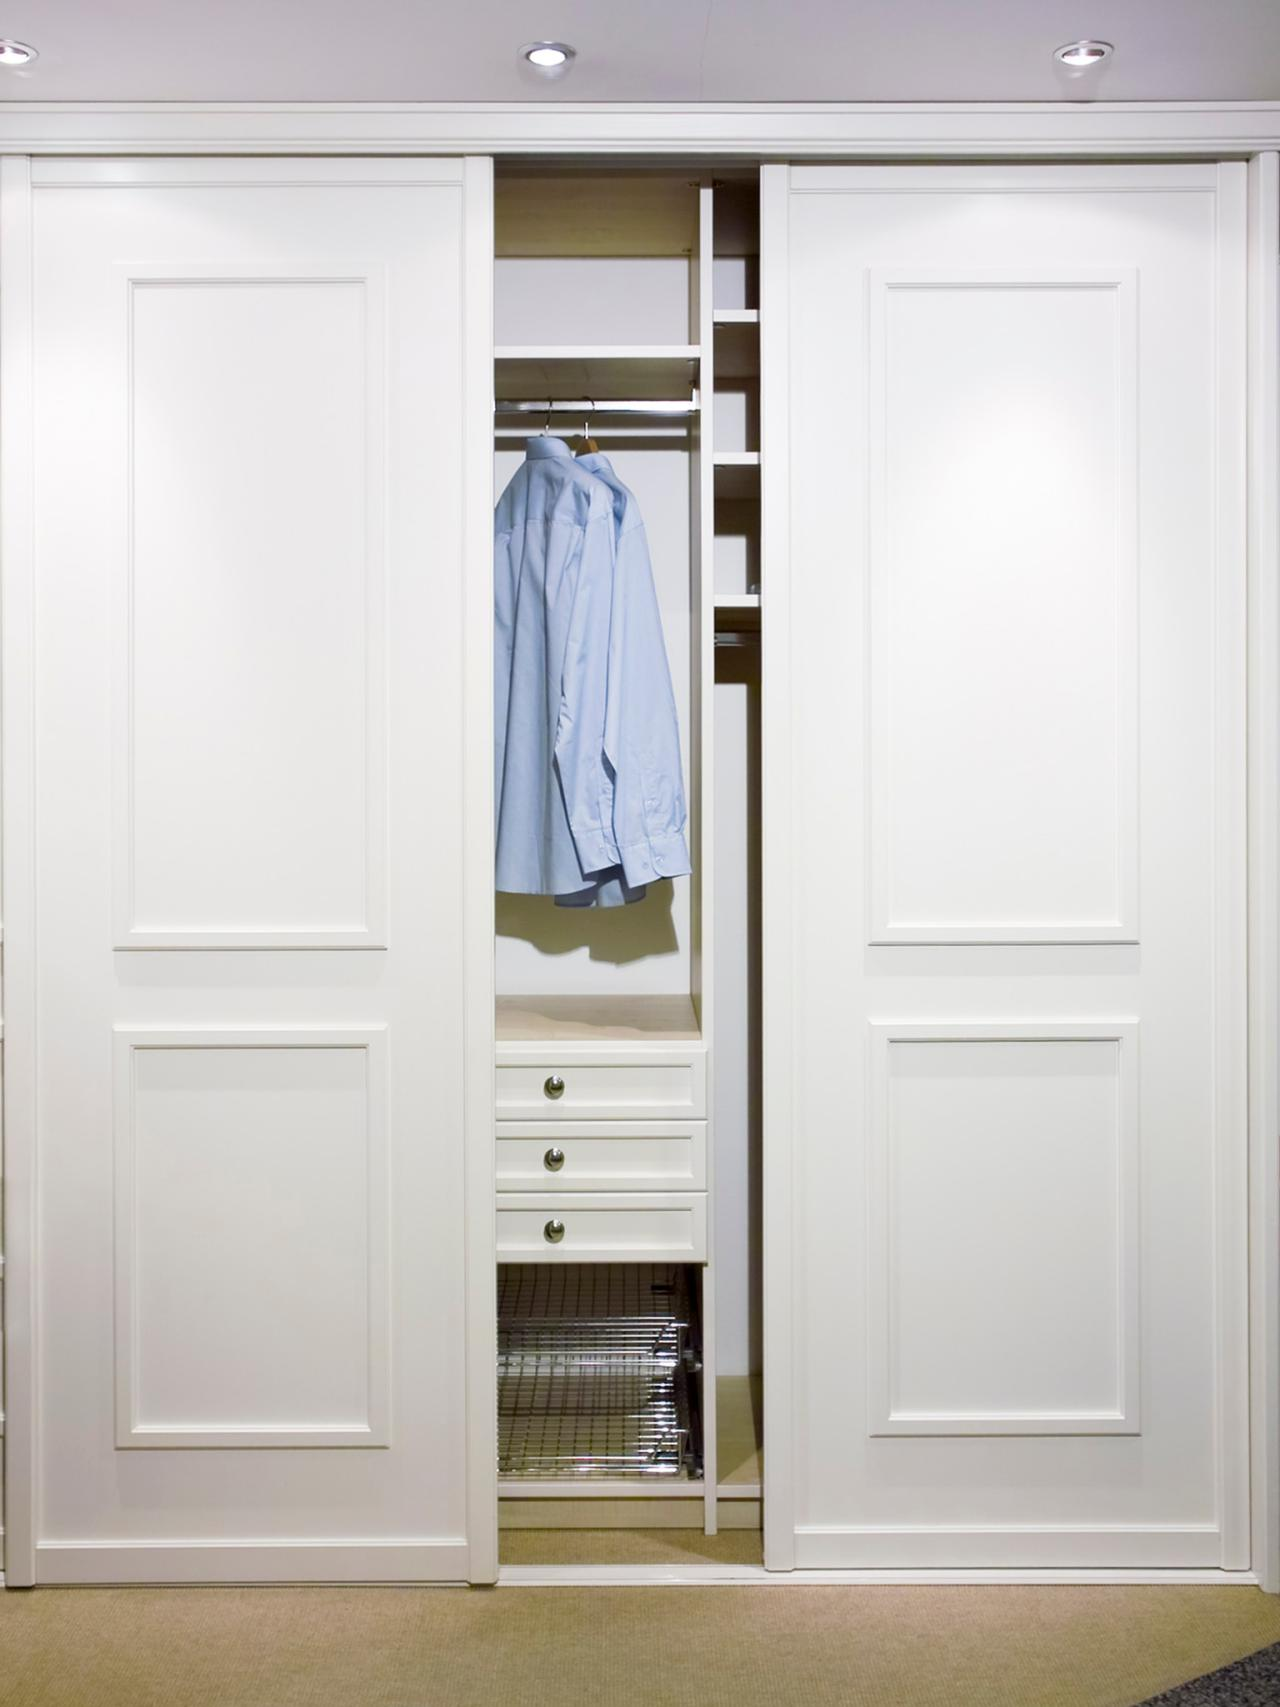 Master sliding closet doors for bedrooms sliding closet doors: design ideas and options lcpjcka